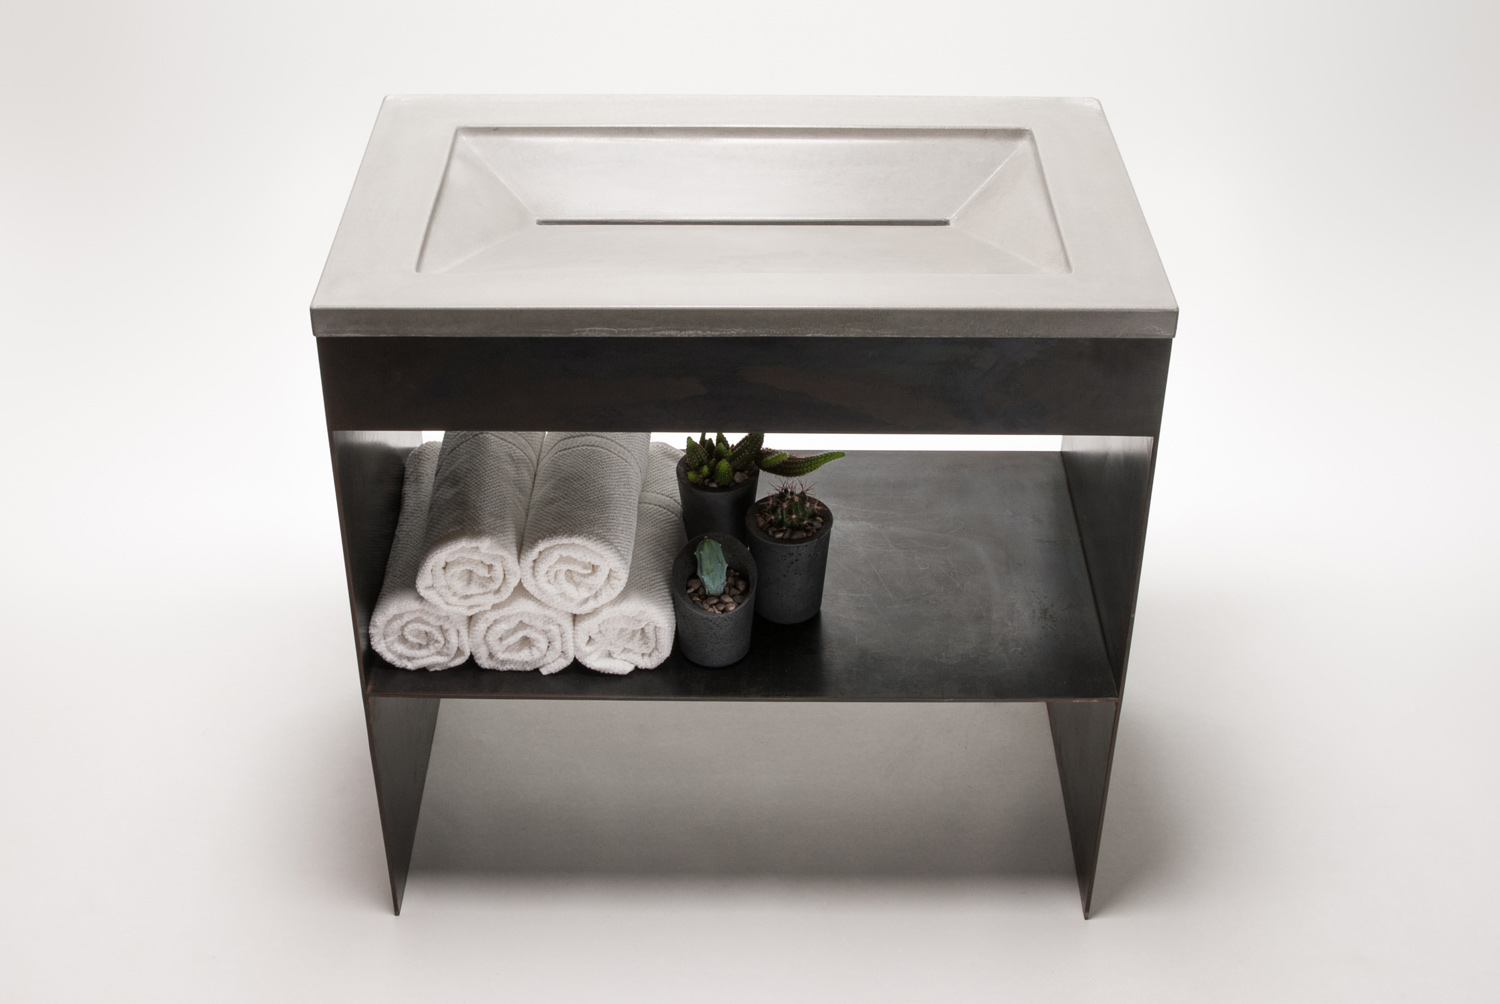 Concrete ramp sink, sometimes referred to as a wedge sink, on a custom steel sink base.